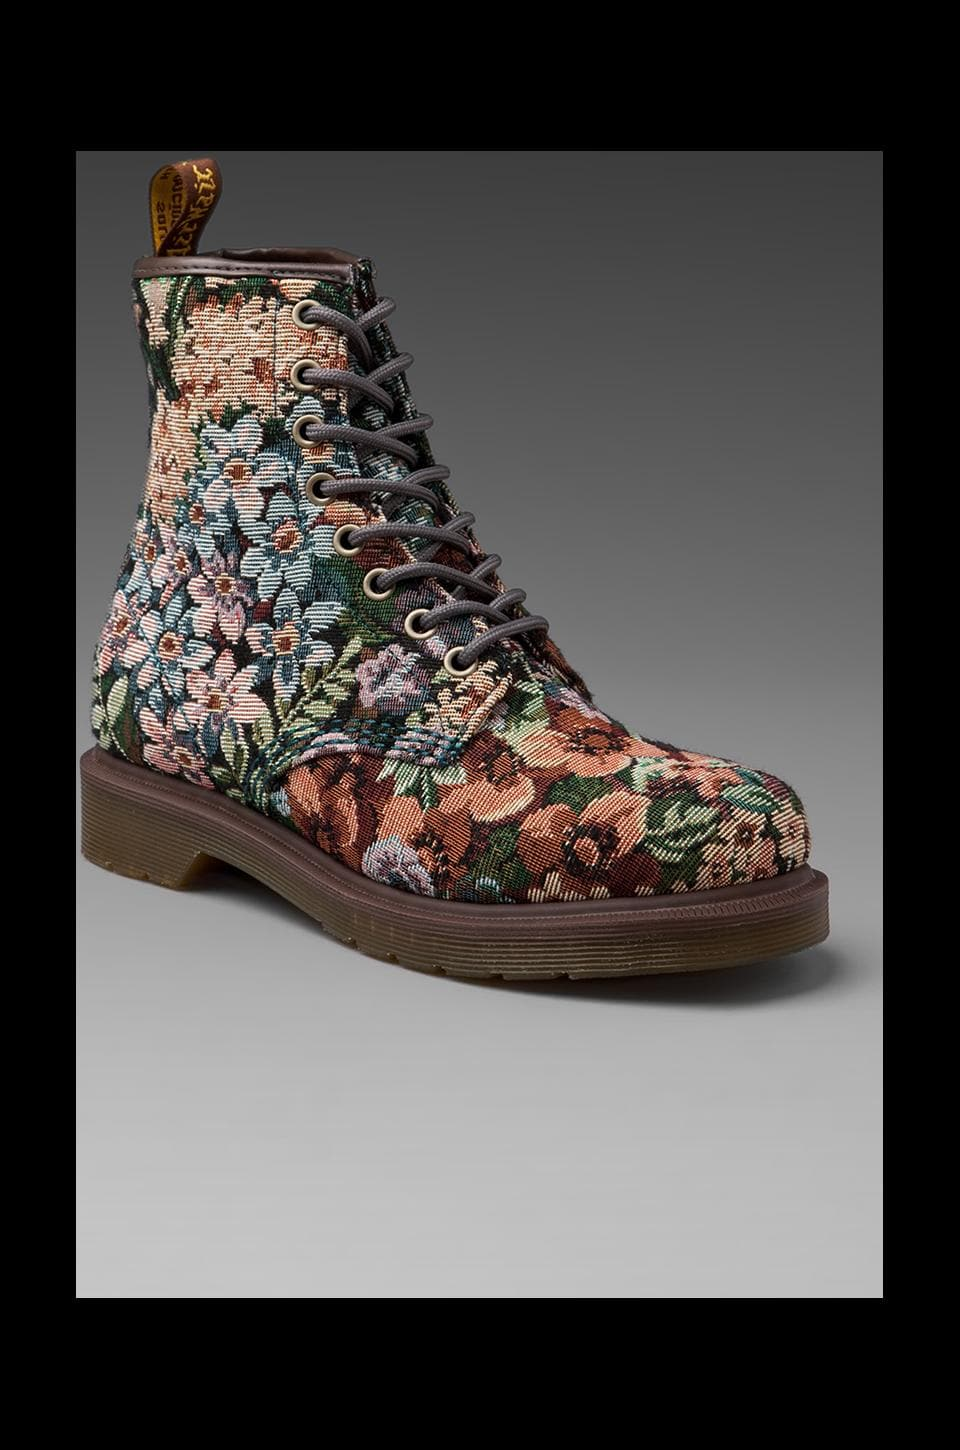 Dr. Martens Castle Needlepoint 8-Eye Boot in Multi